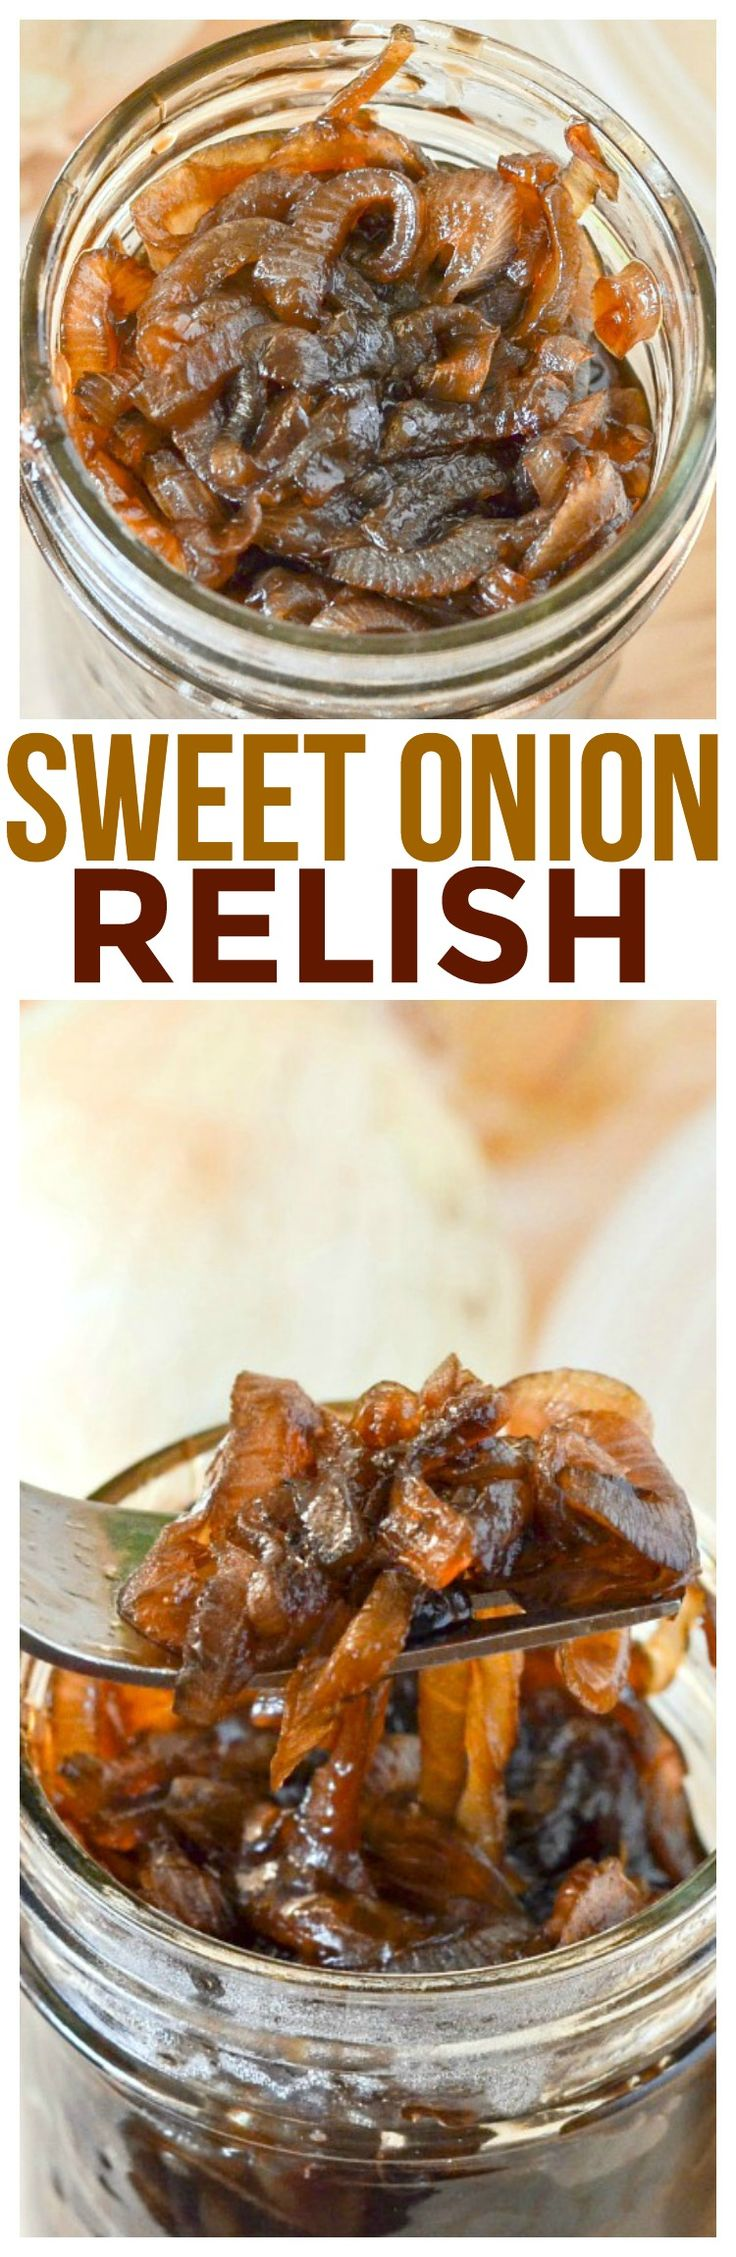 Try this tasty sweet onion relish recipe - or if you want call it onion jam recipe it has sweet balsamic onions caramelized to perfection. via @KnowYourProduce